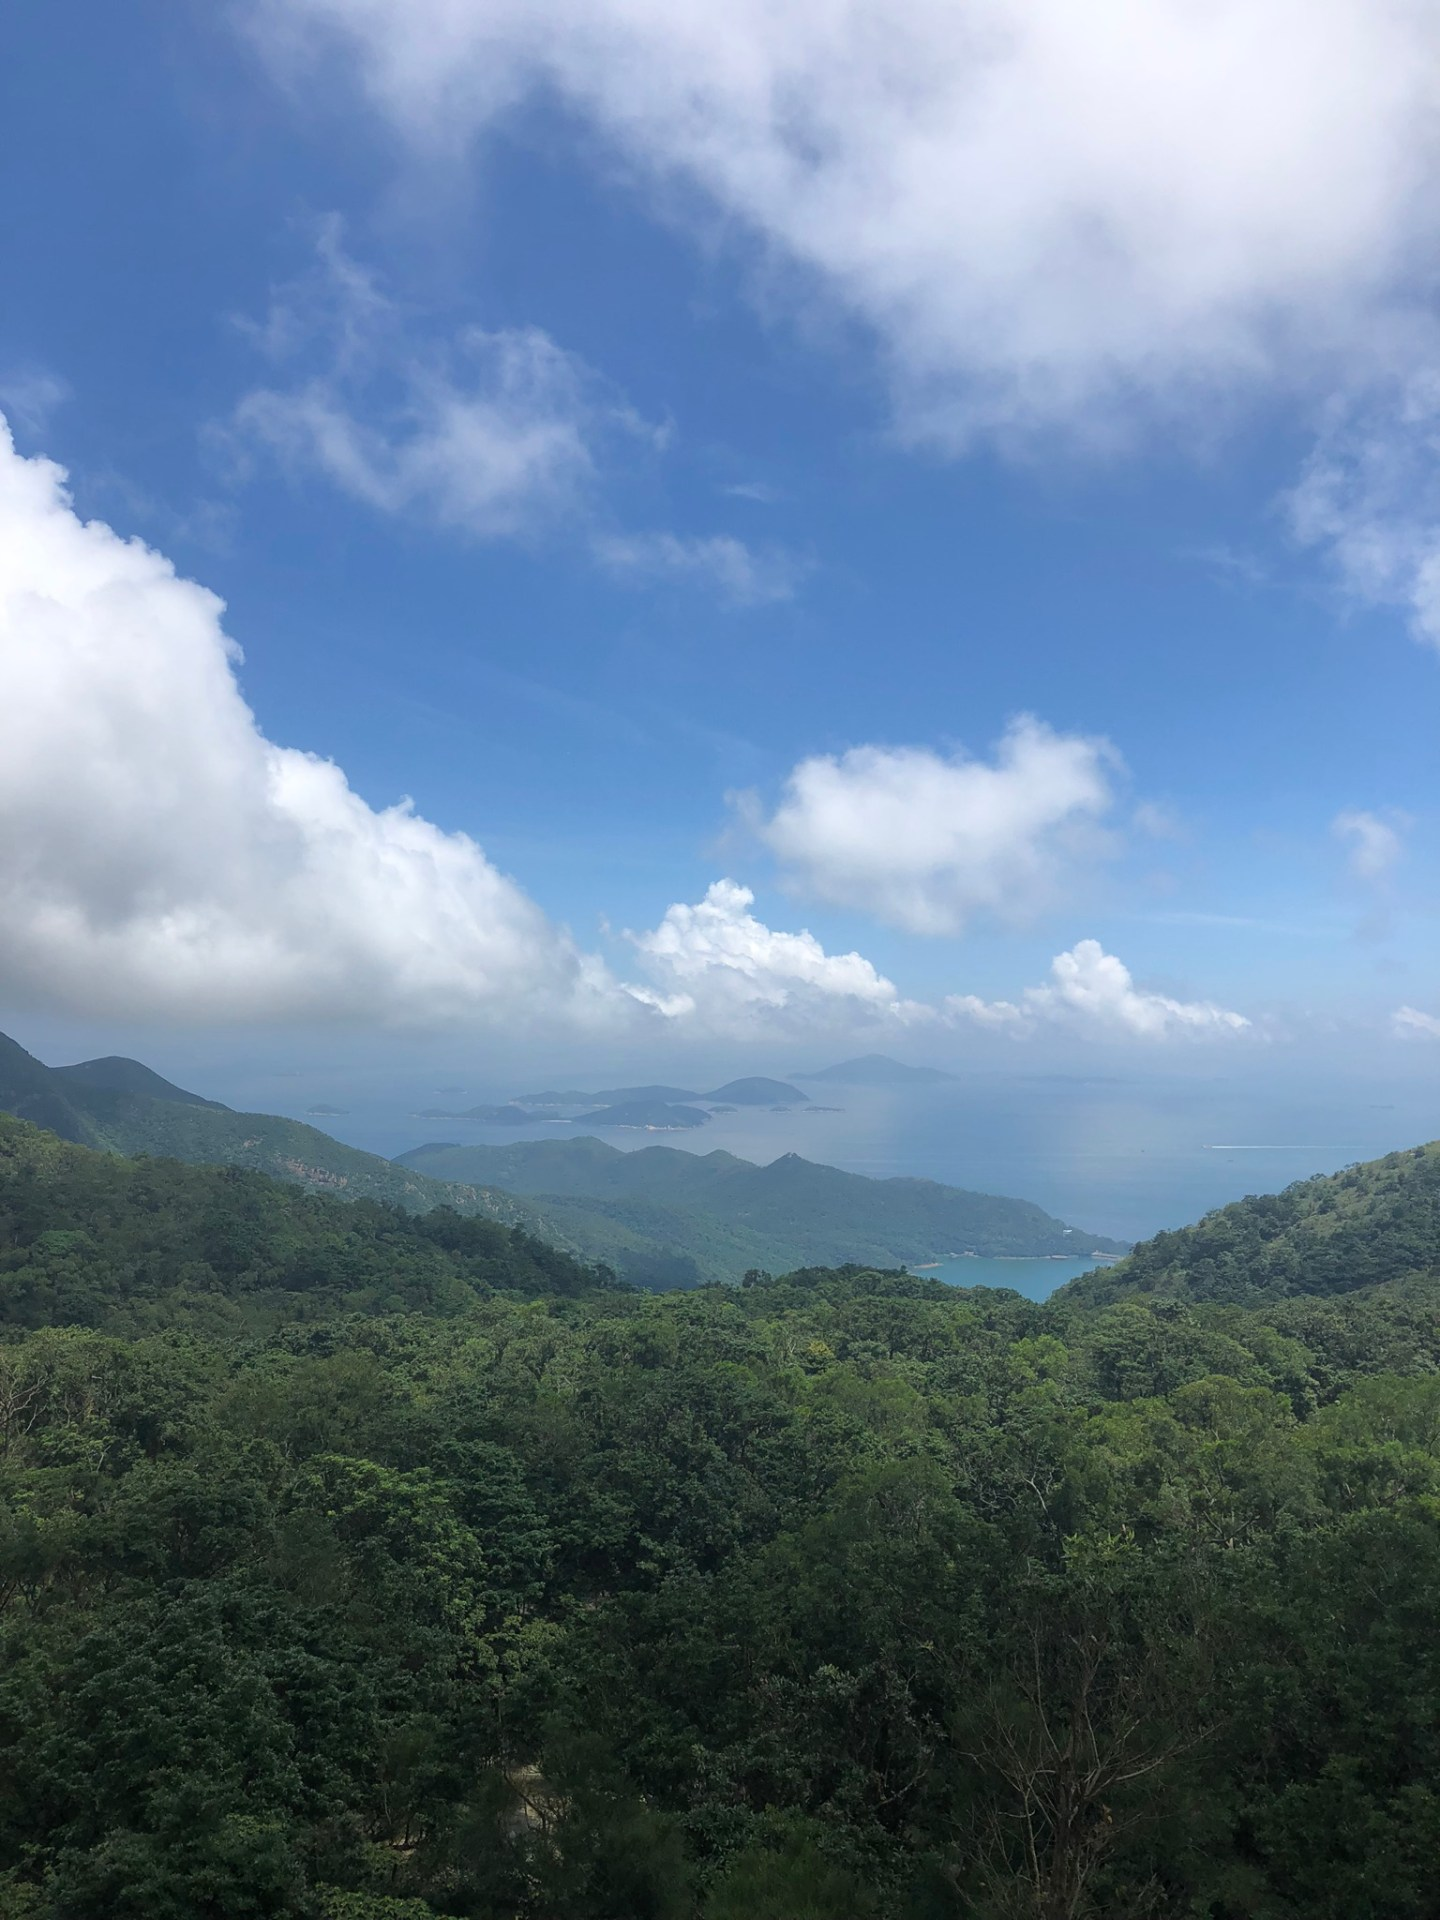 Views across Lantau Island from Tian Tan Buddha